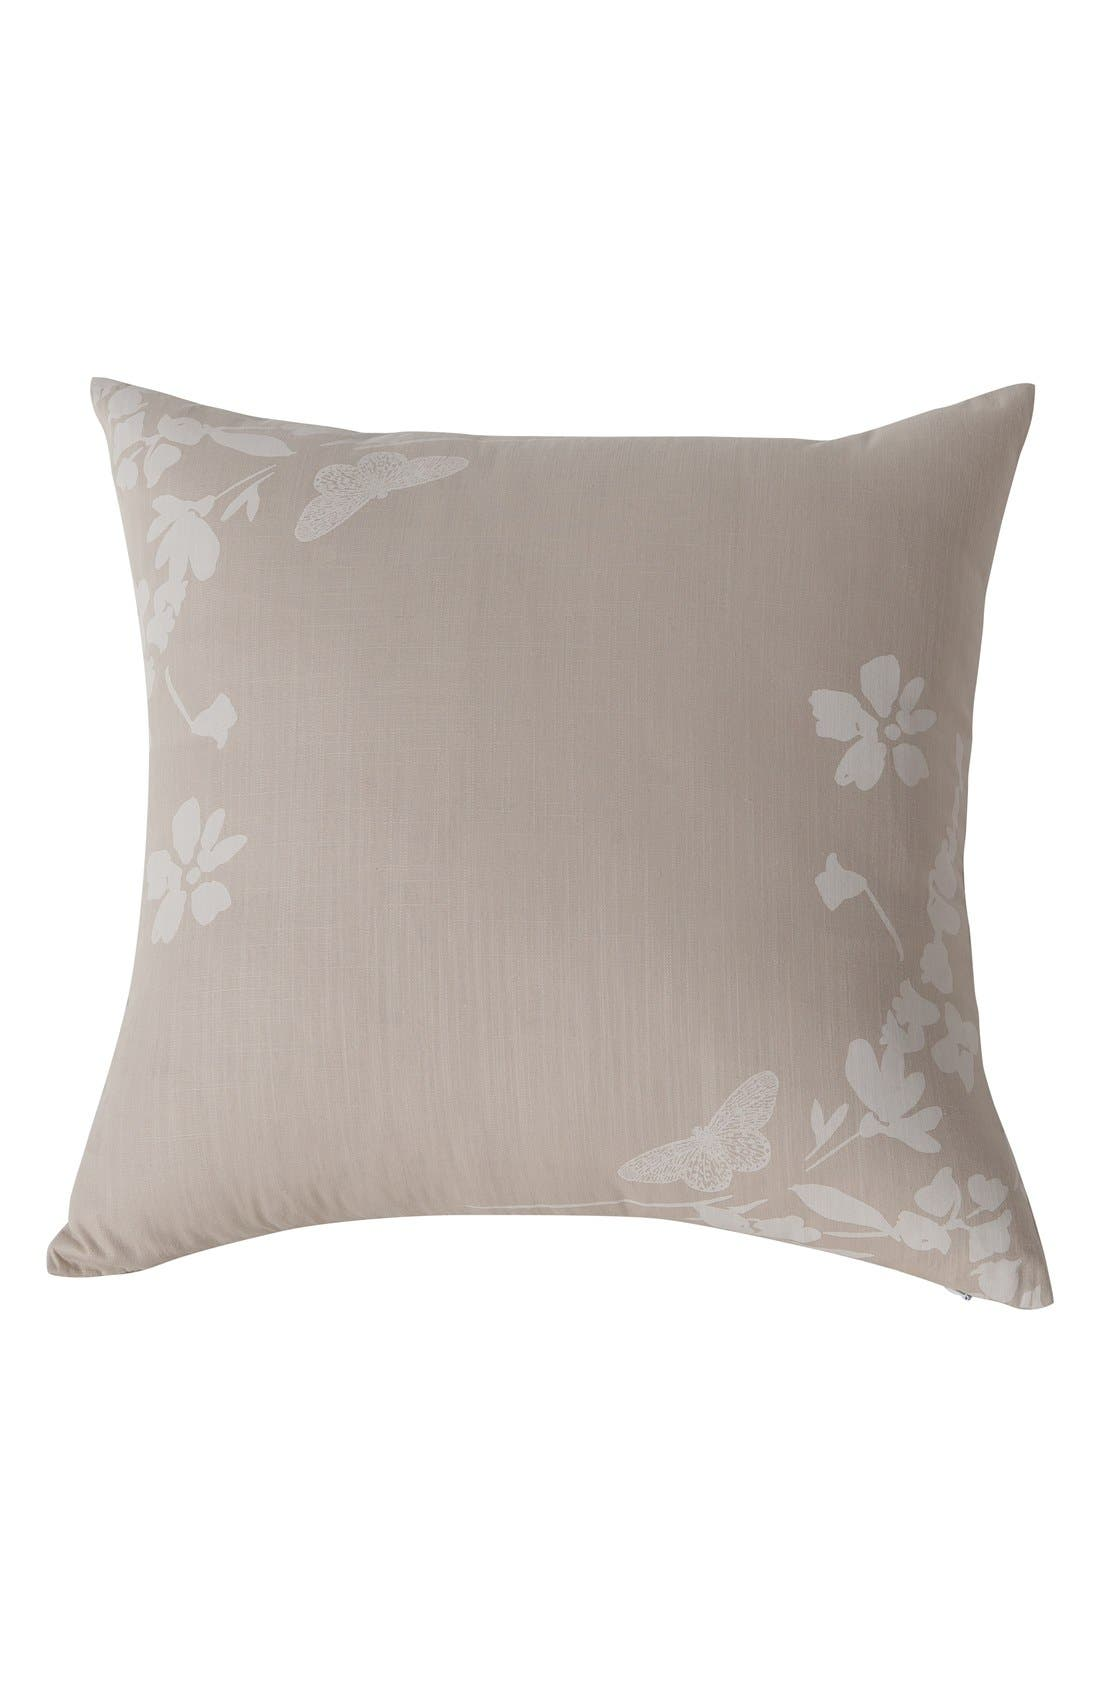 Main Image - kensie 'Laramie' Accent Pillow